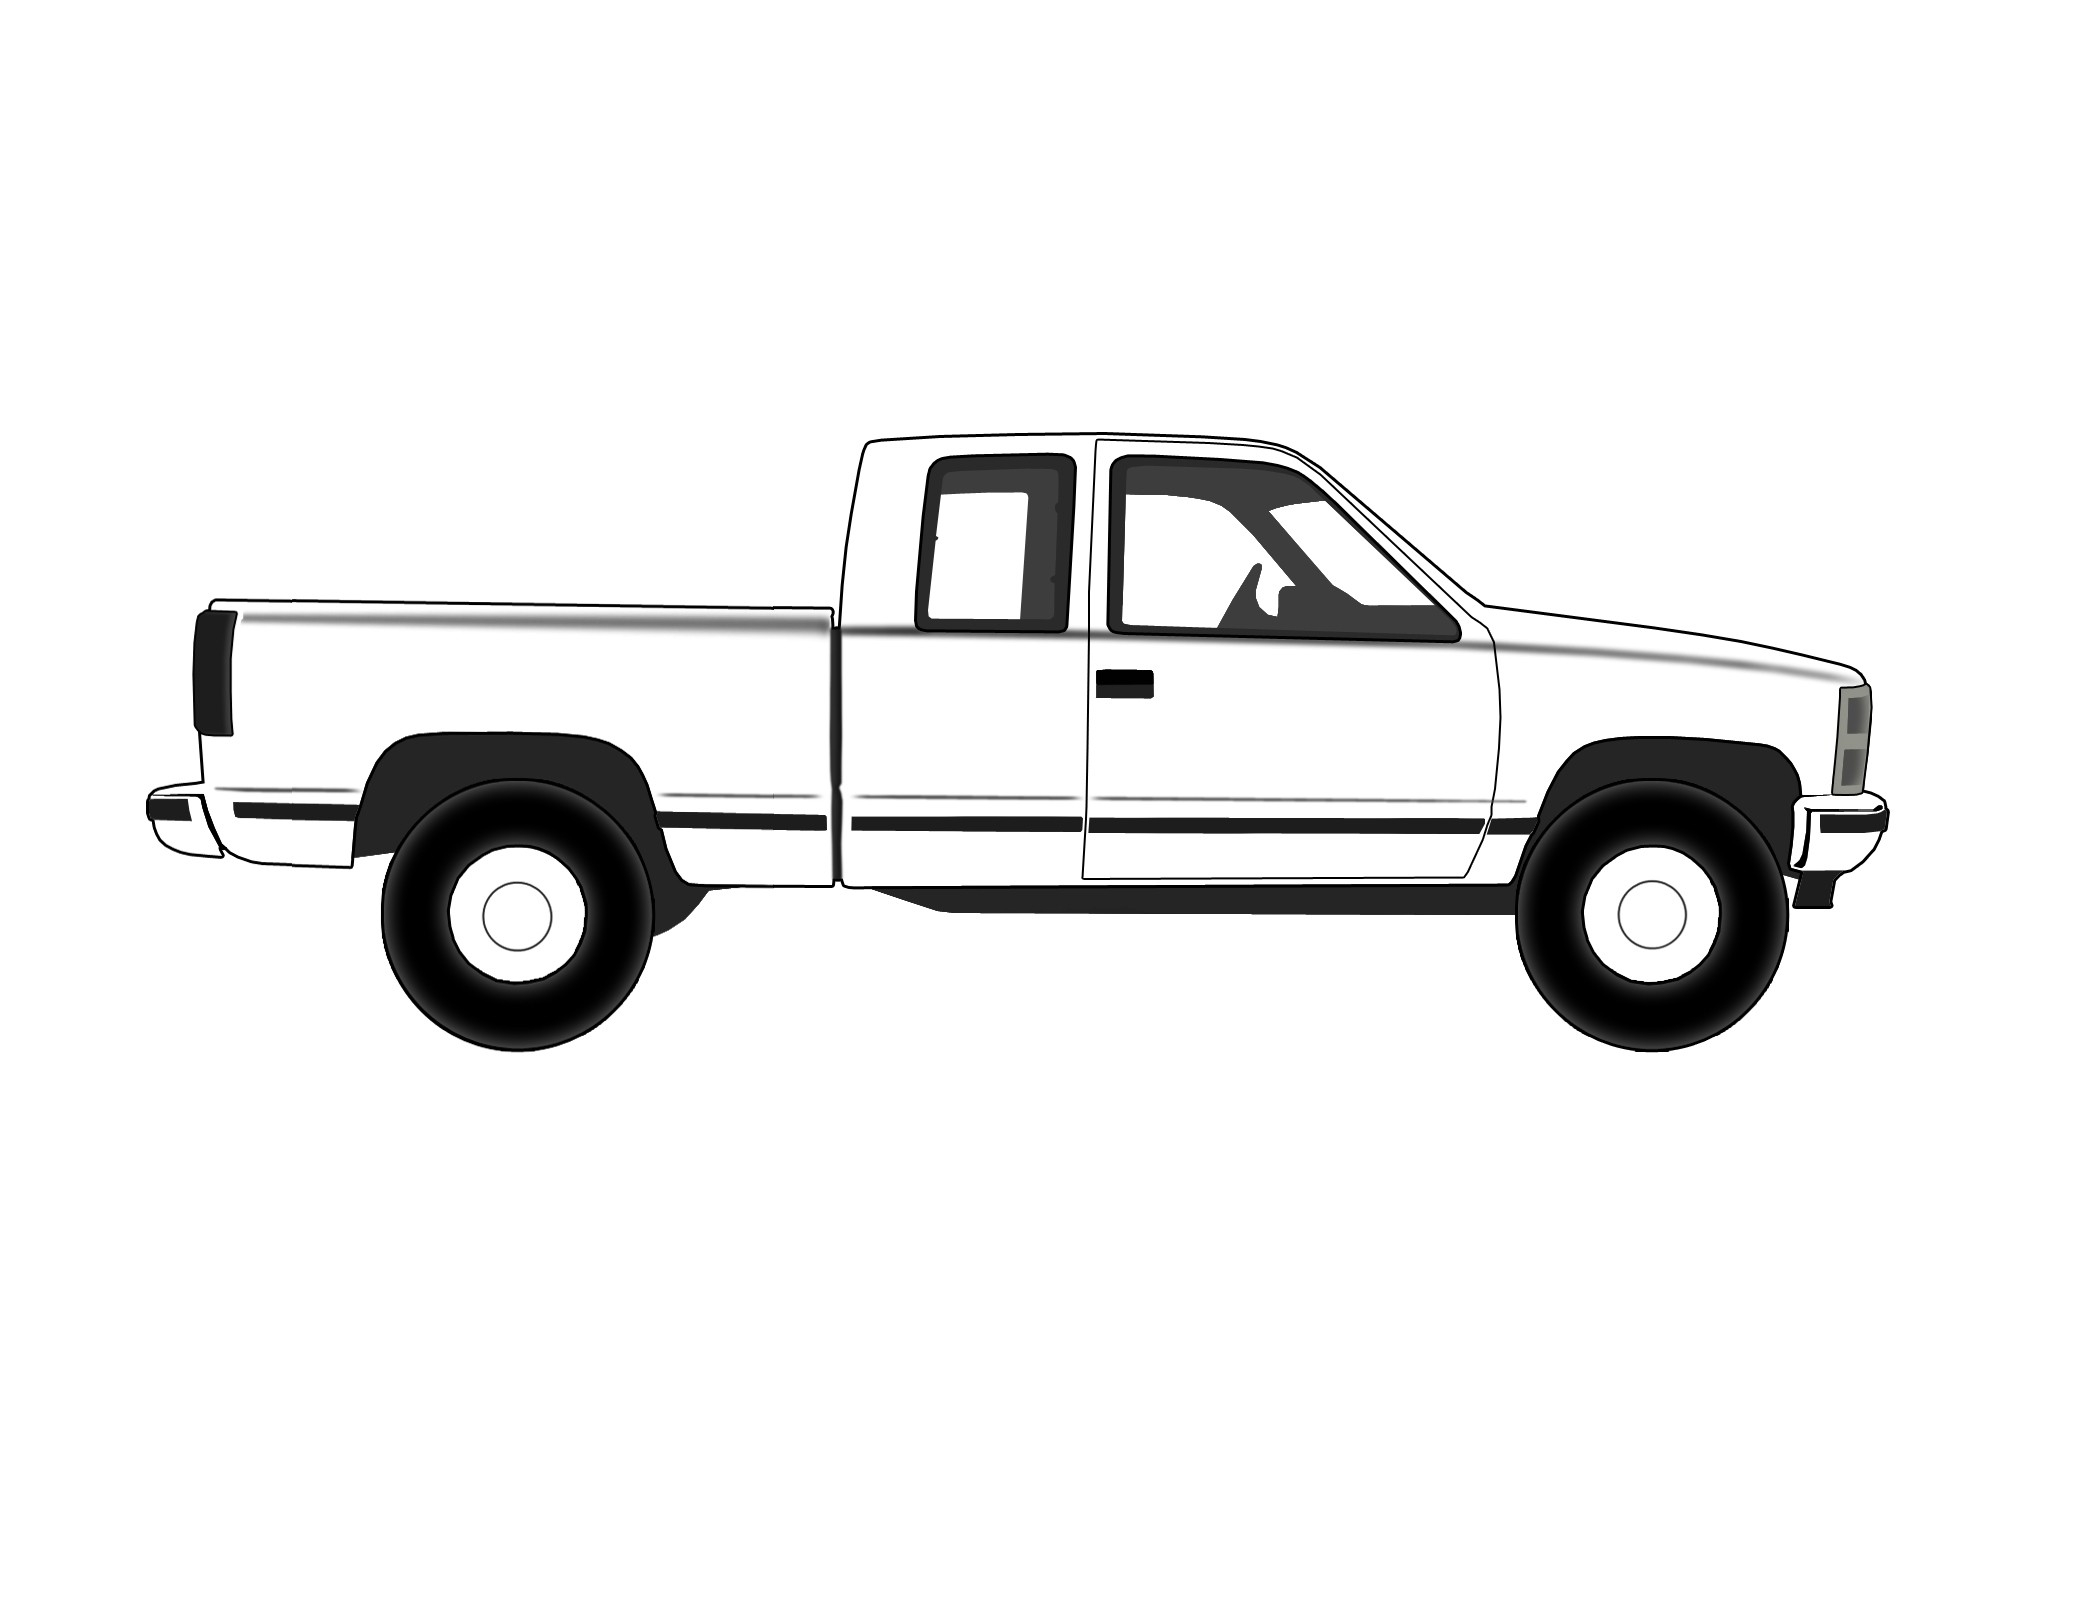 Ford F150 Pickup Truck Coloring Page to Print – Free Coloring Sheets